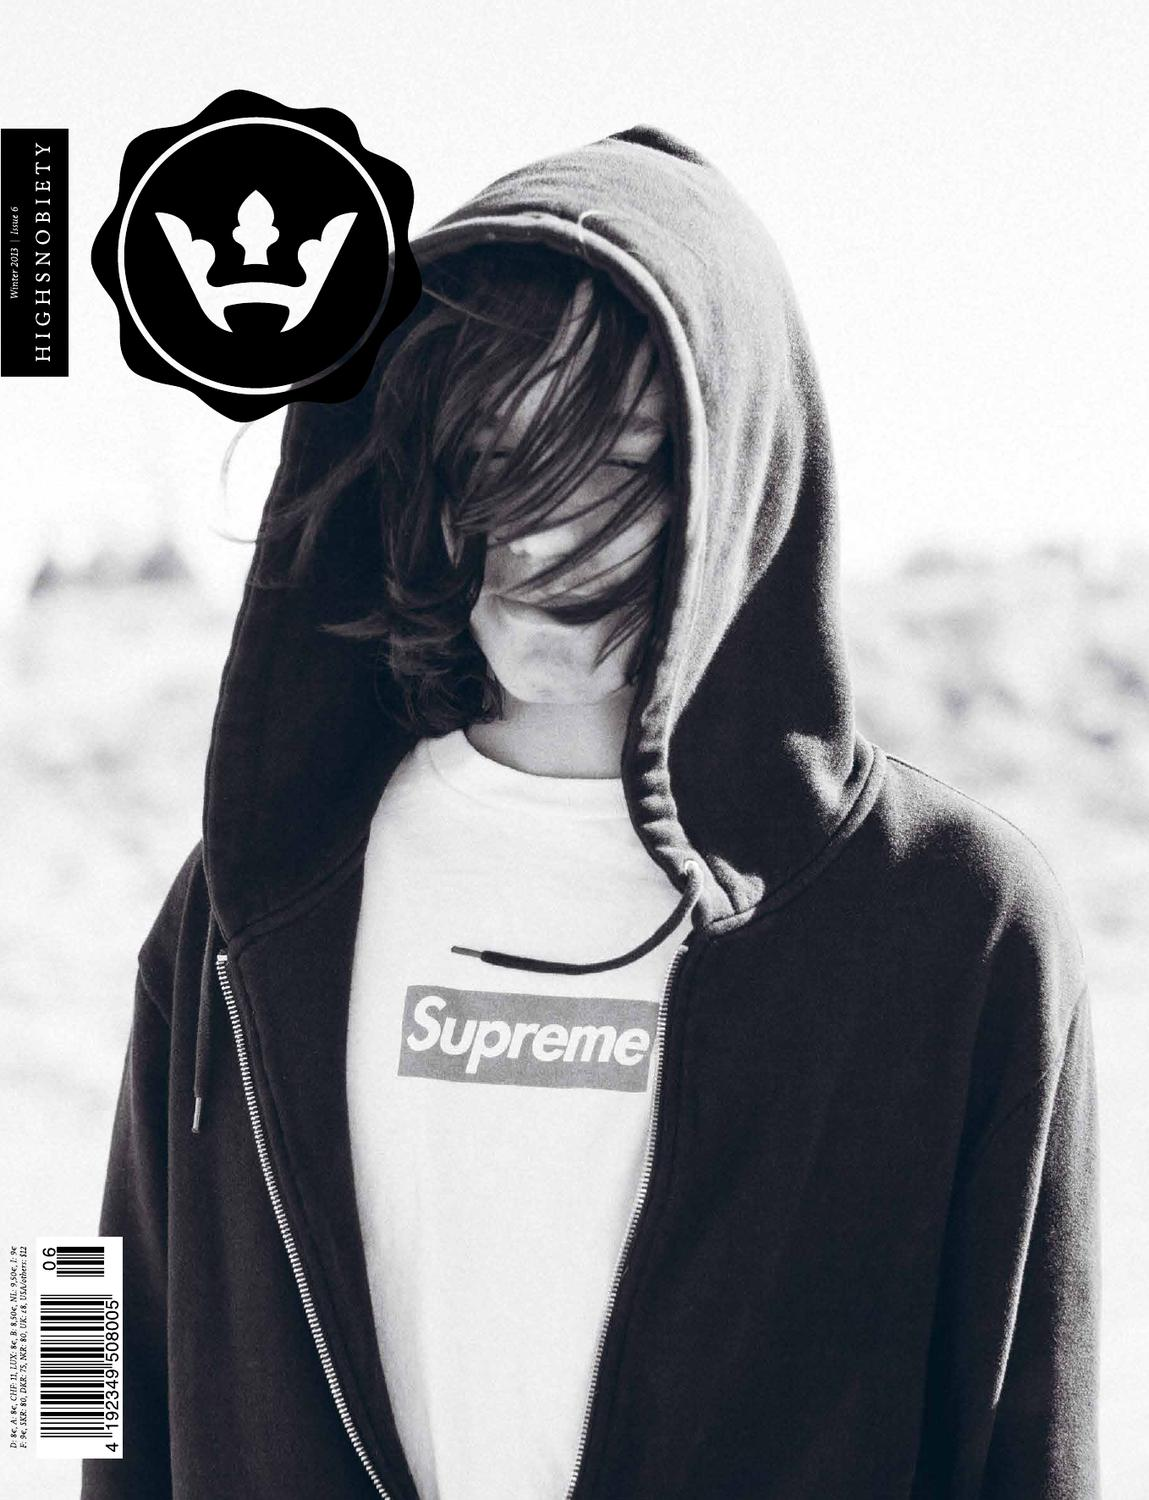 584ecf7e406e2 Highsnobiety Magazine 06 - Winter 2013 by HIGHSNOBIETY - issuu